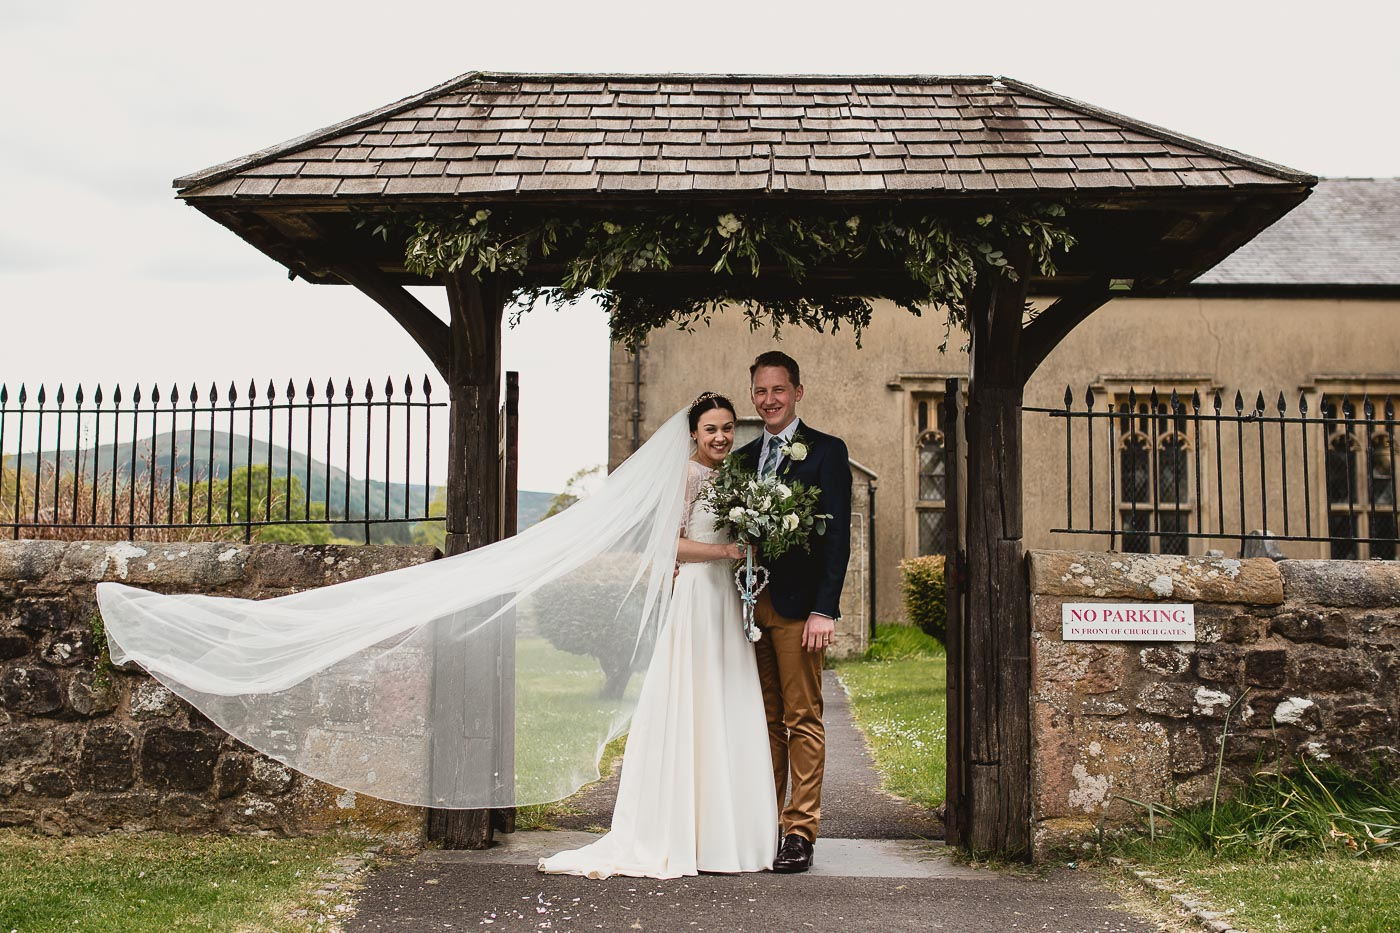 Wedding couple portrait with the brides veil blowing in the wind, No posing wedding photography